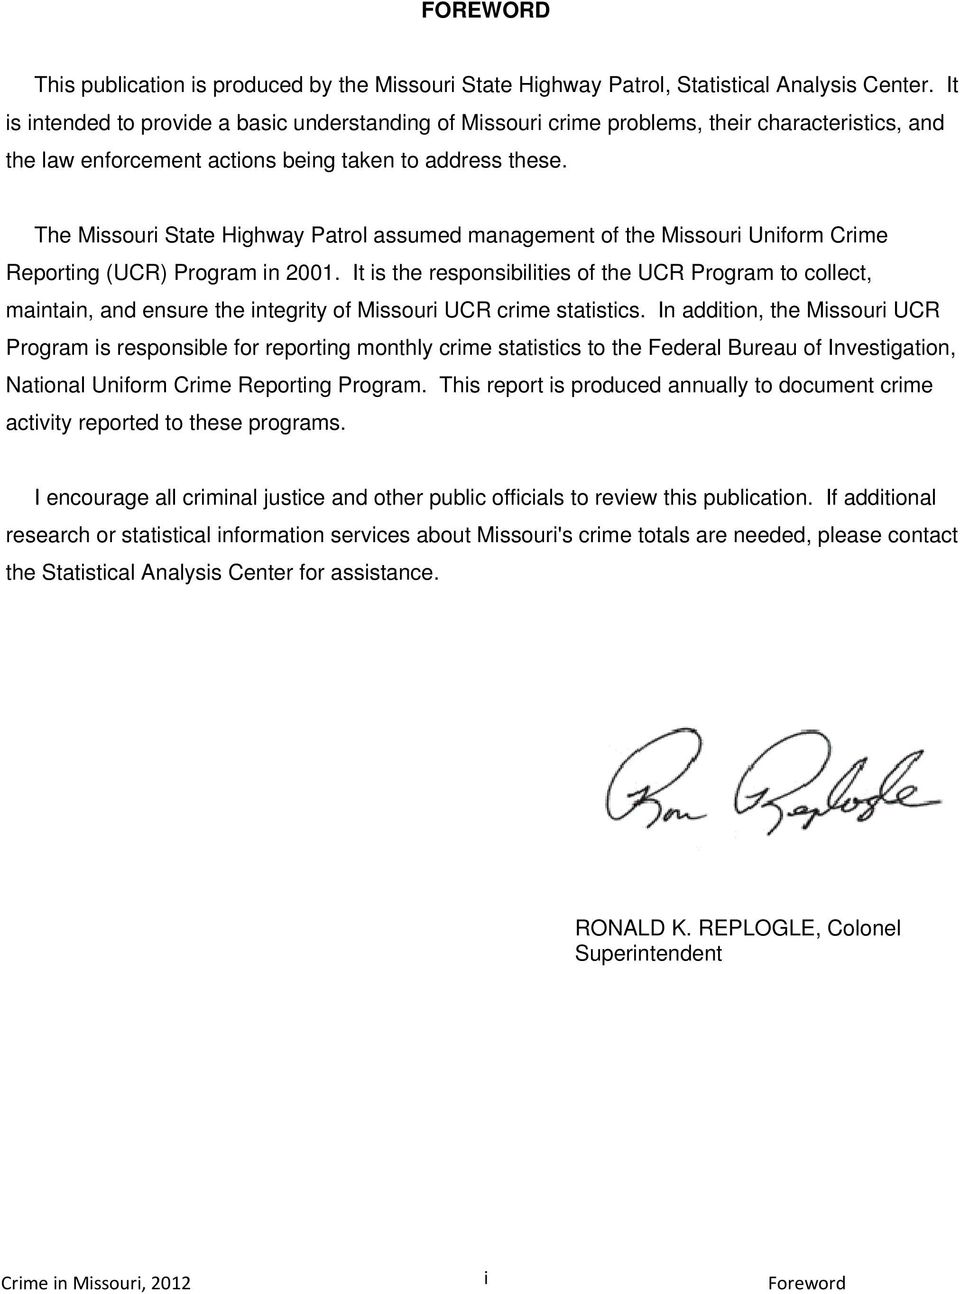 The Missouri State Highway Patrol assumed management of the Missouri Uniform Crime Reporting (UCR) Program in 2001.